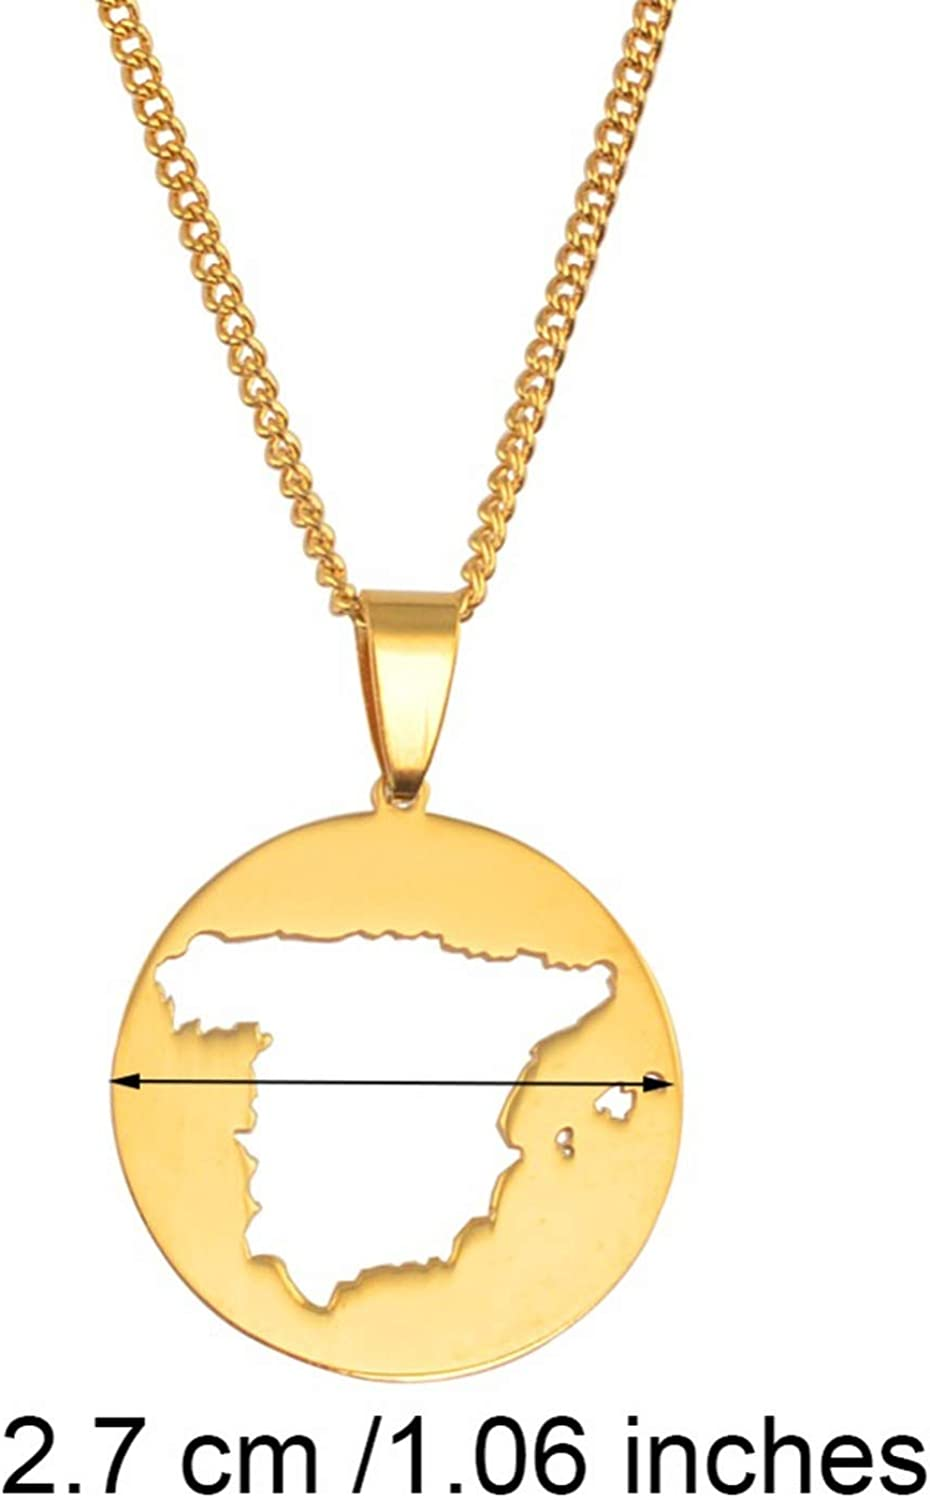 Life-Center-Store Round Spain Map Pendant Necklaces Stainless Steel for Women Men Girls Gold Color Charm Spanish Maps Jewelry Gifts